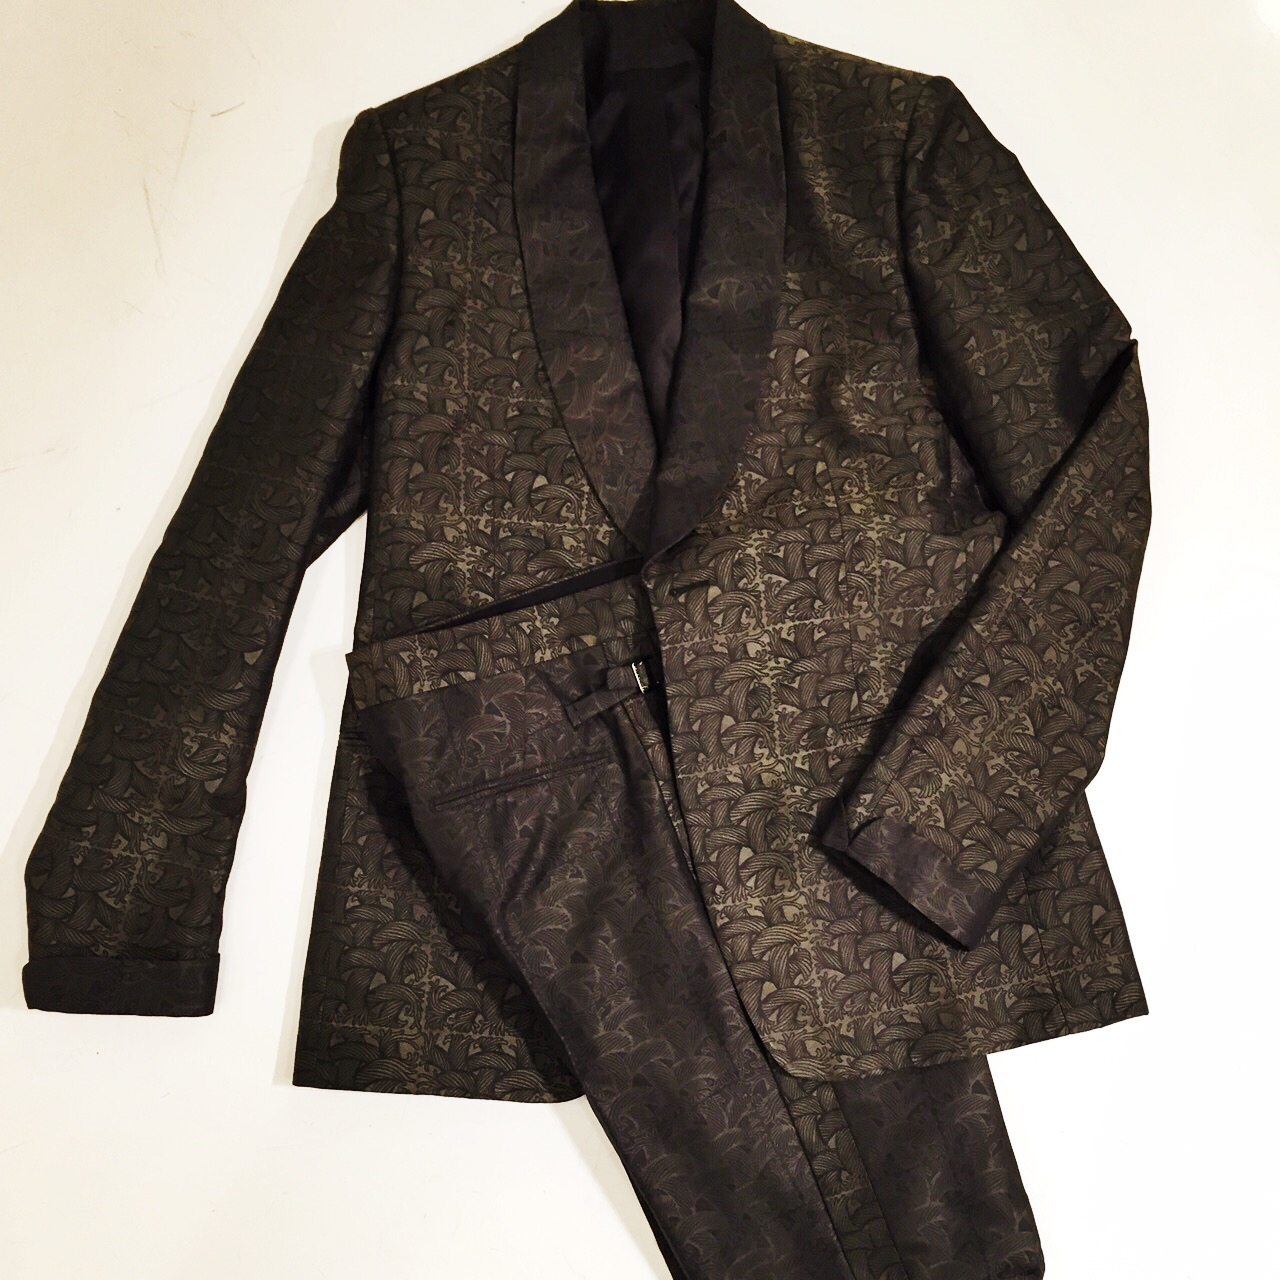 Louis Vuitton Suit